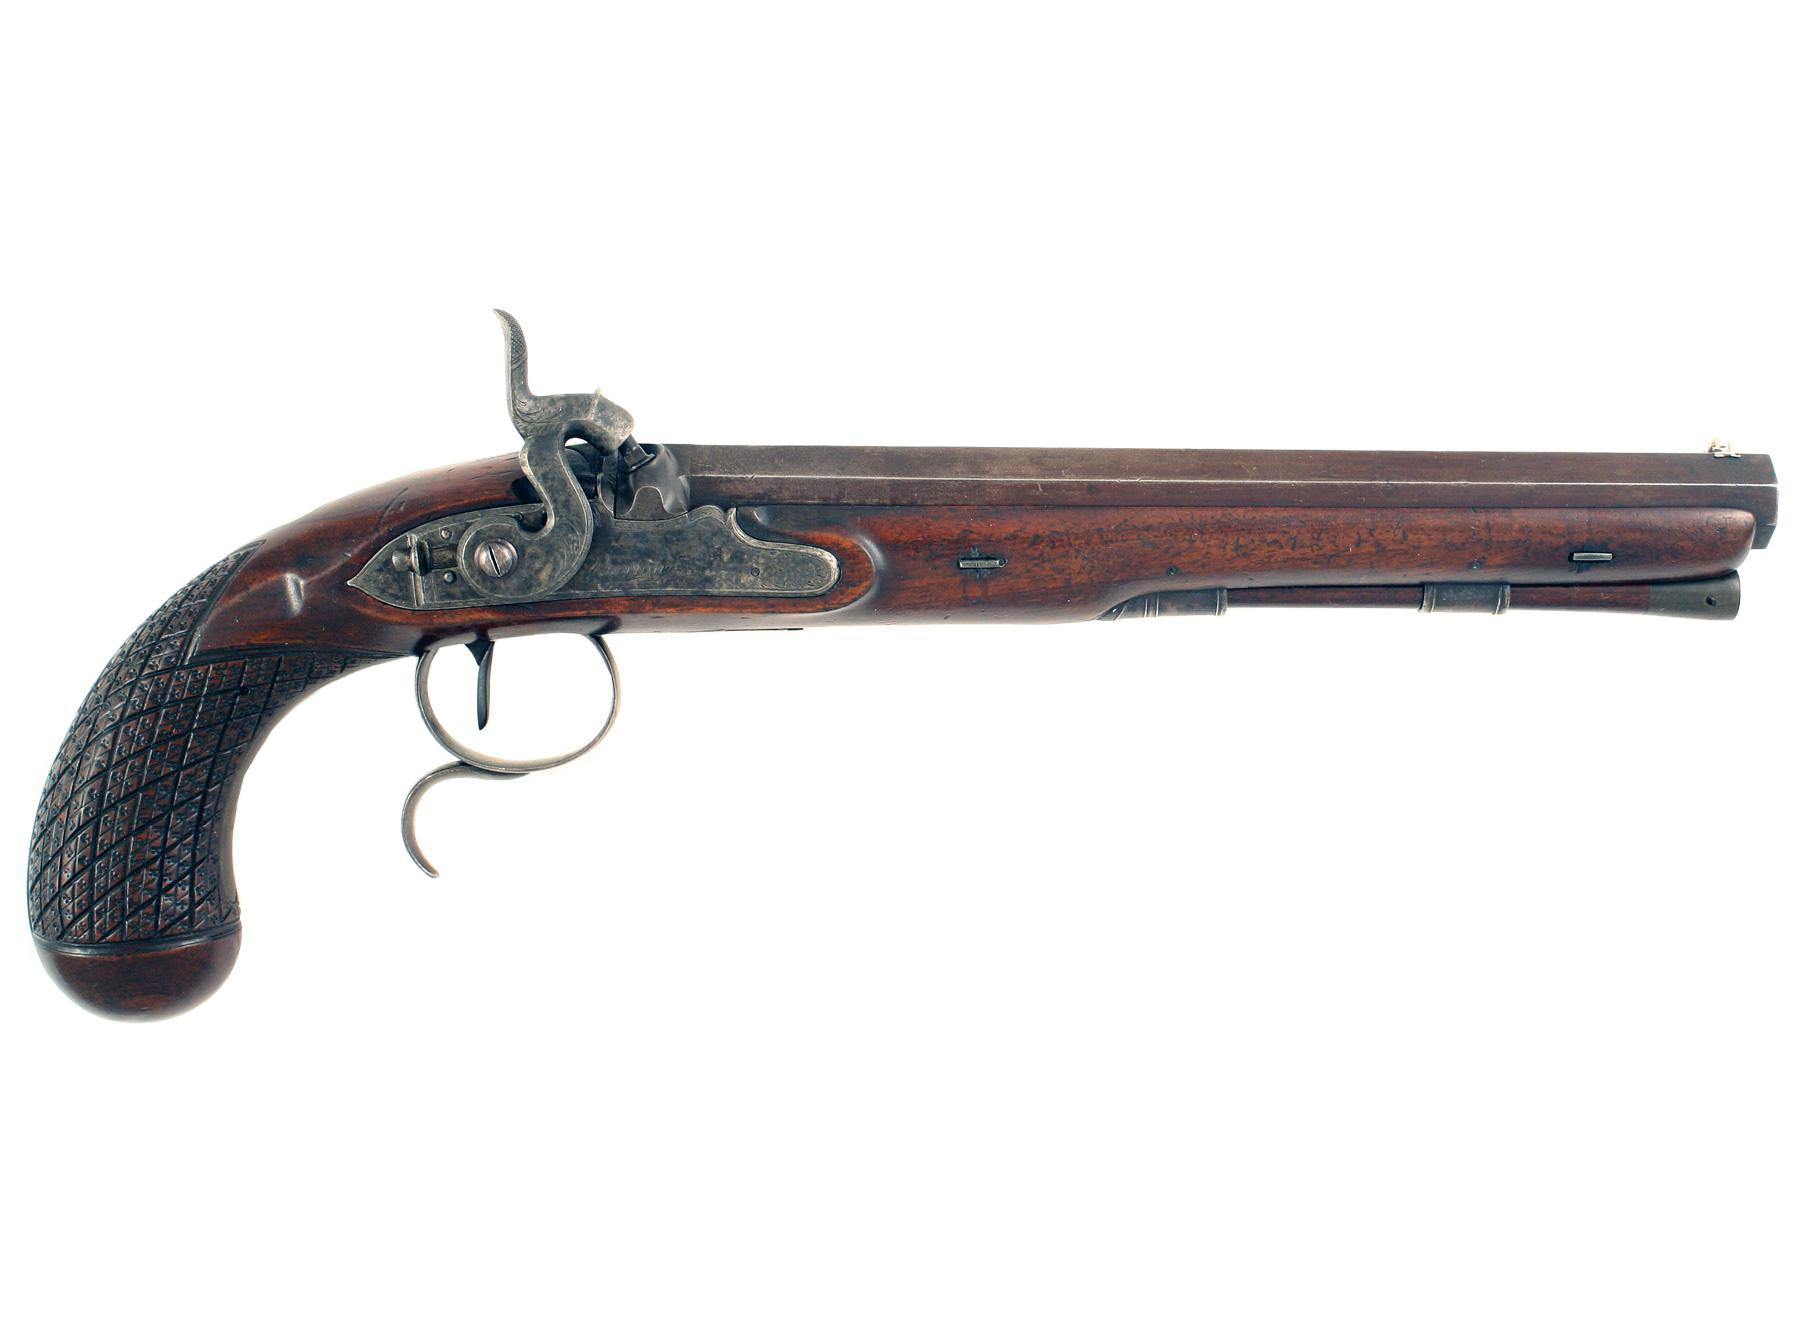 A Percussion Duelling Pistol by Barton.